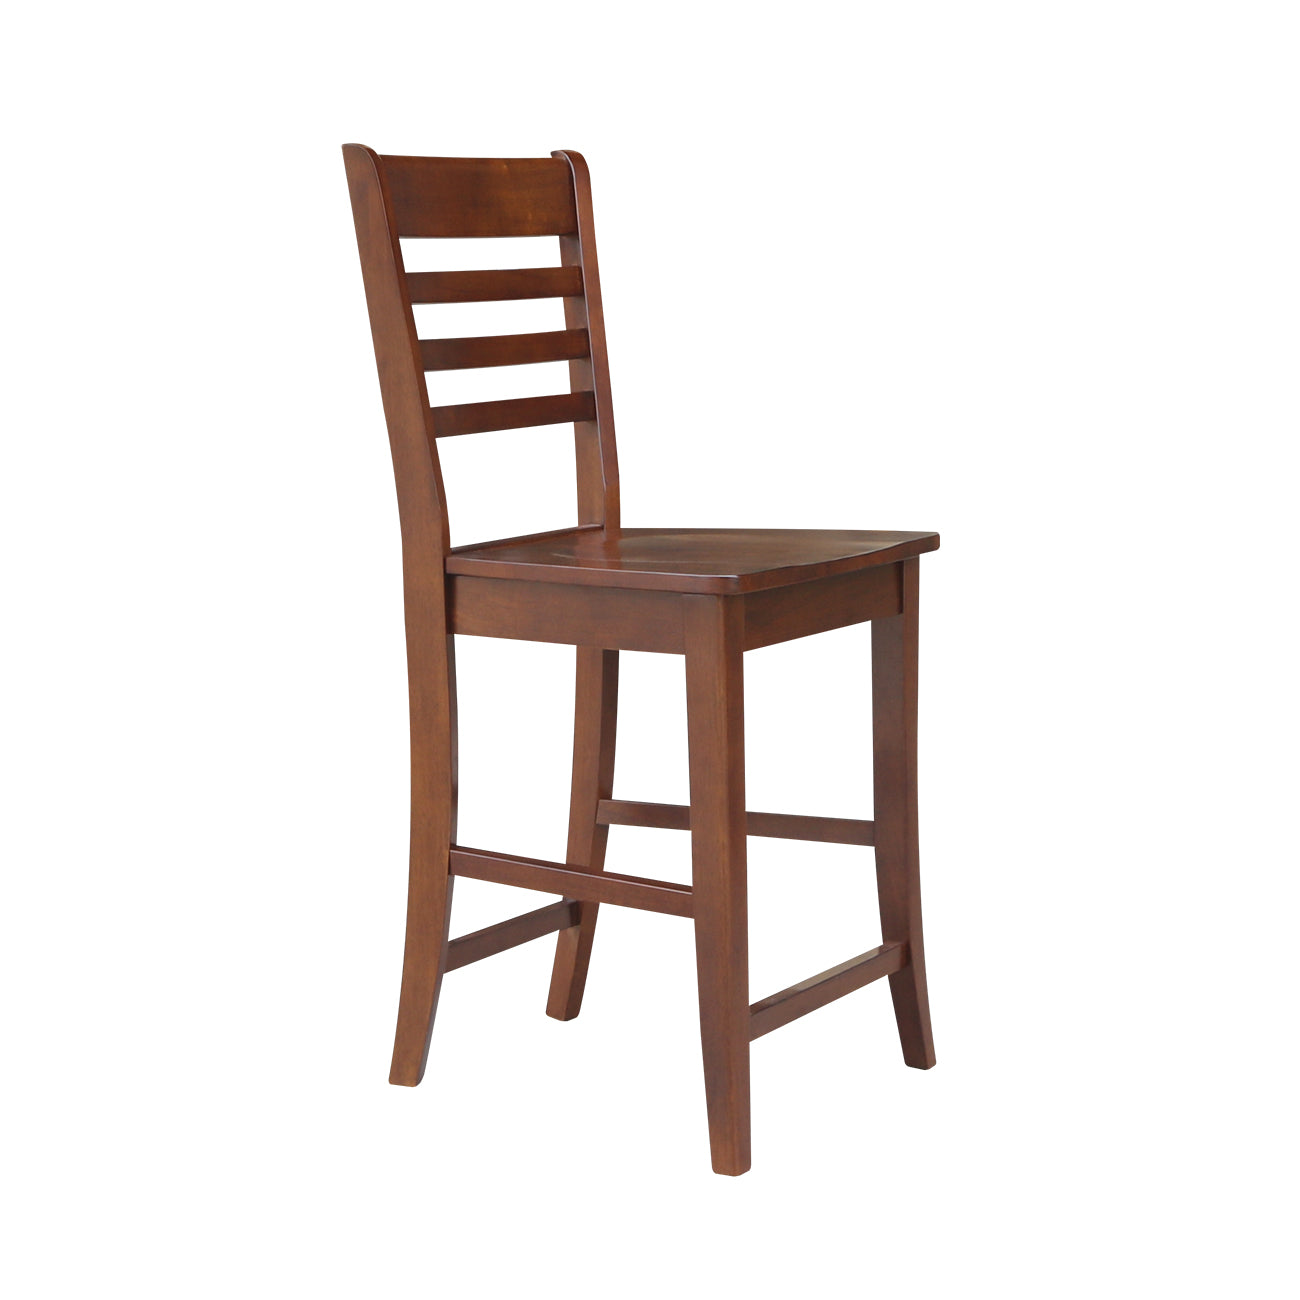 Height of Wood Bar Stool Chair